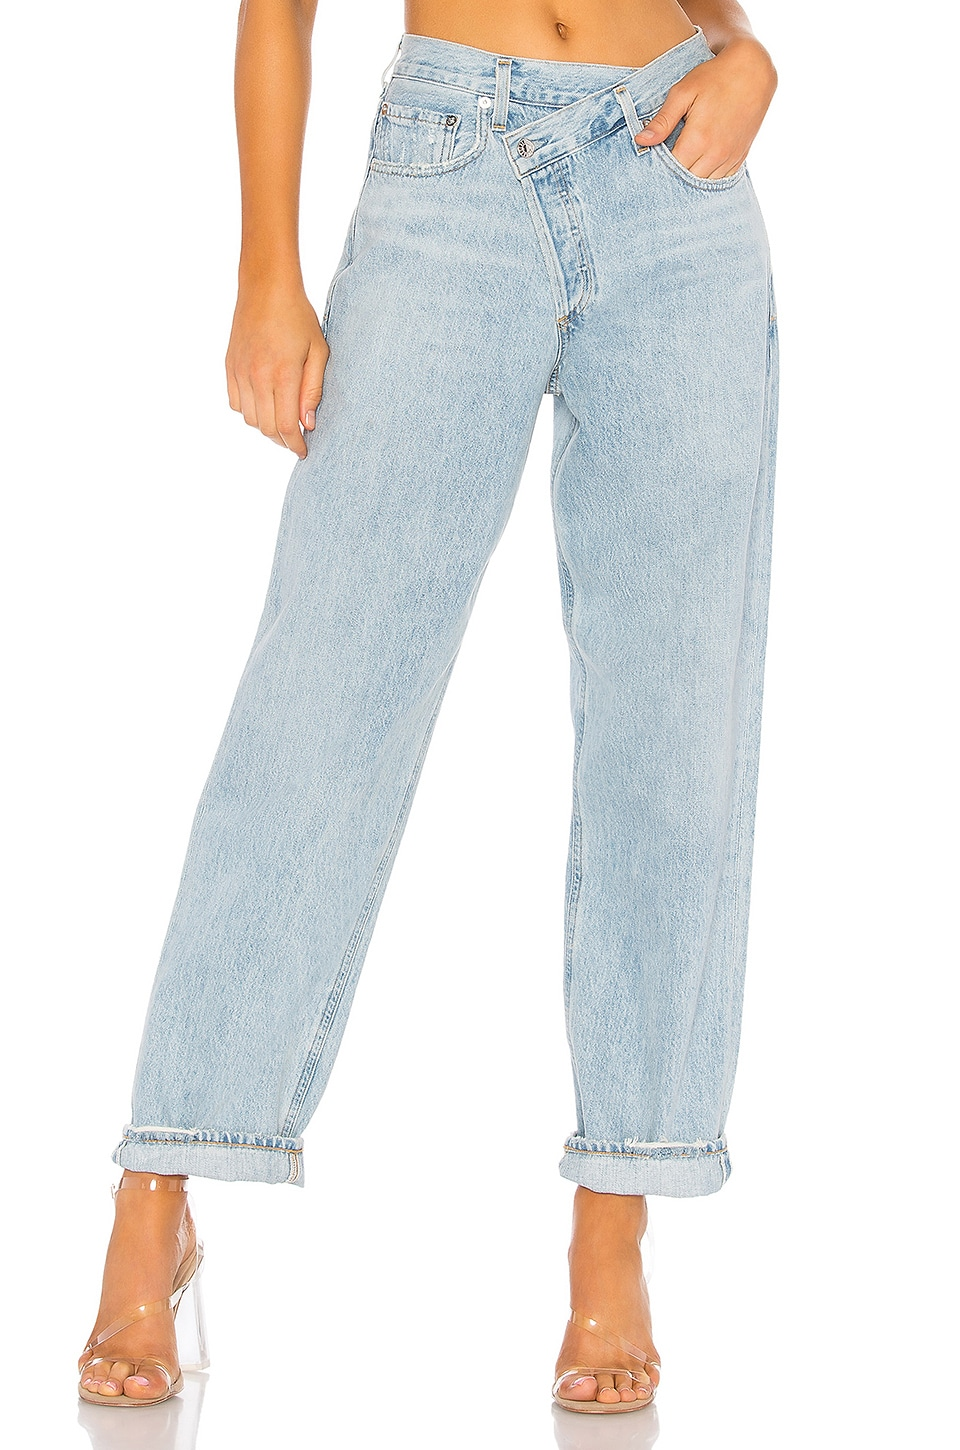 Criss Cross Upsized Jean                     AGOLDE 10